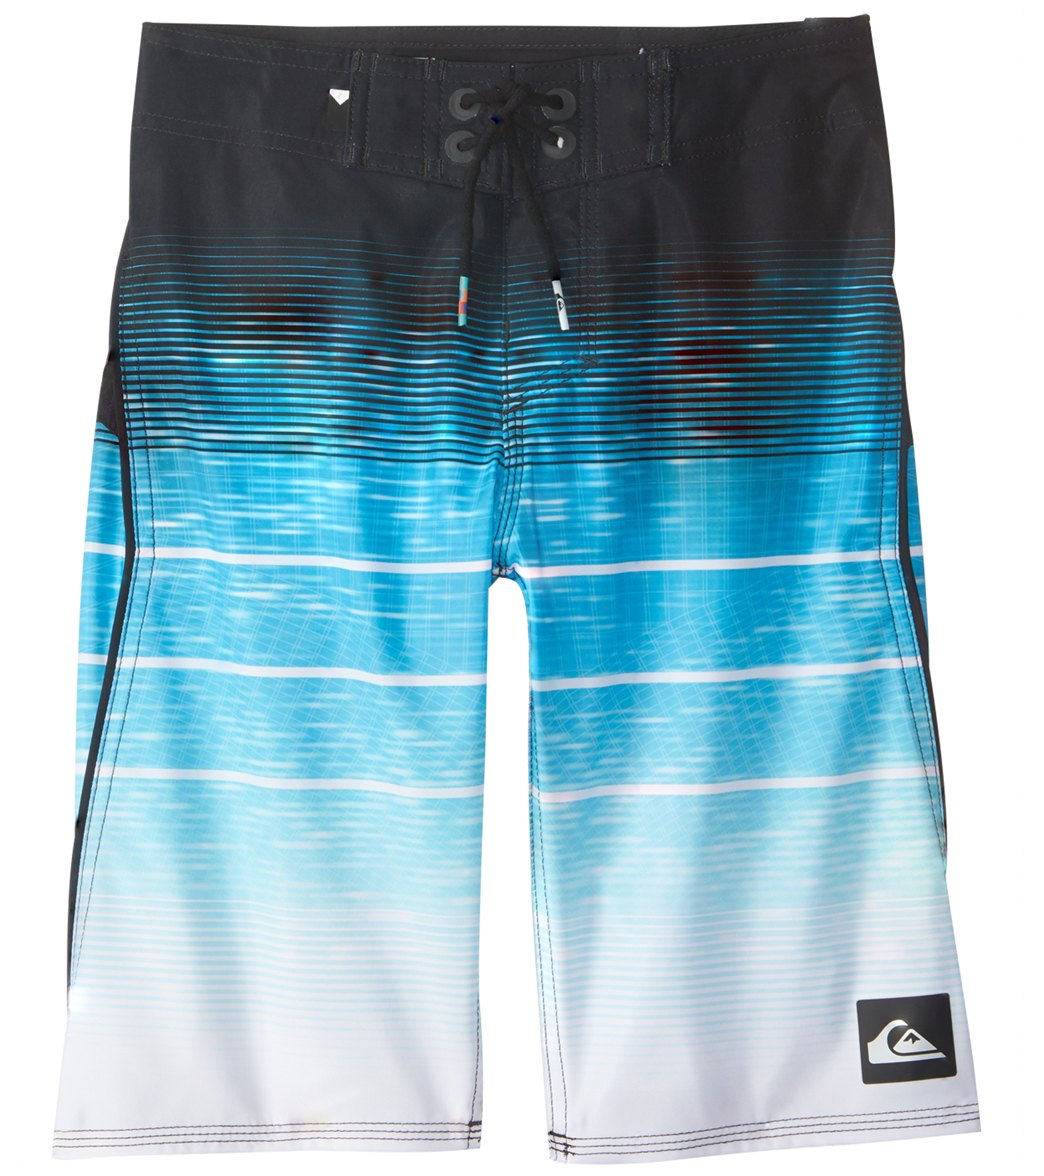 a87574e2b4 Quiksilver Boy's Slab Momentum Vee 19'' Boardshort (8-20) at SwimOutlet.com  - Free Shipping